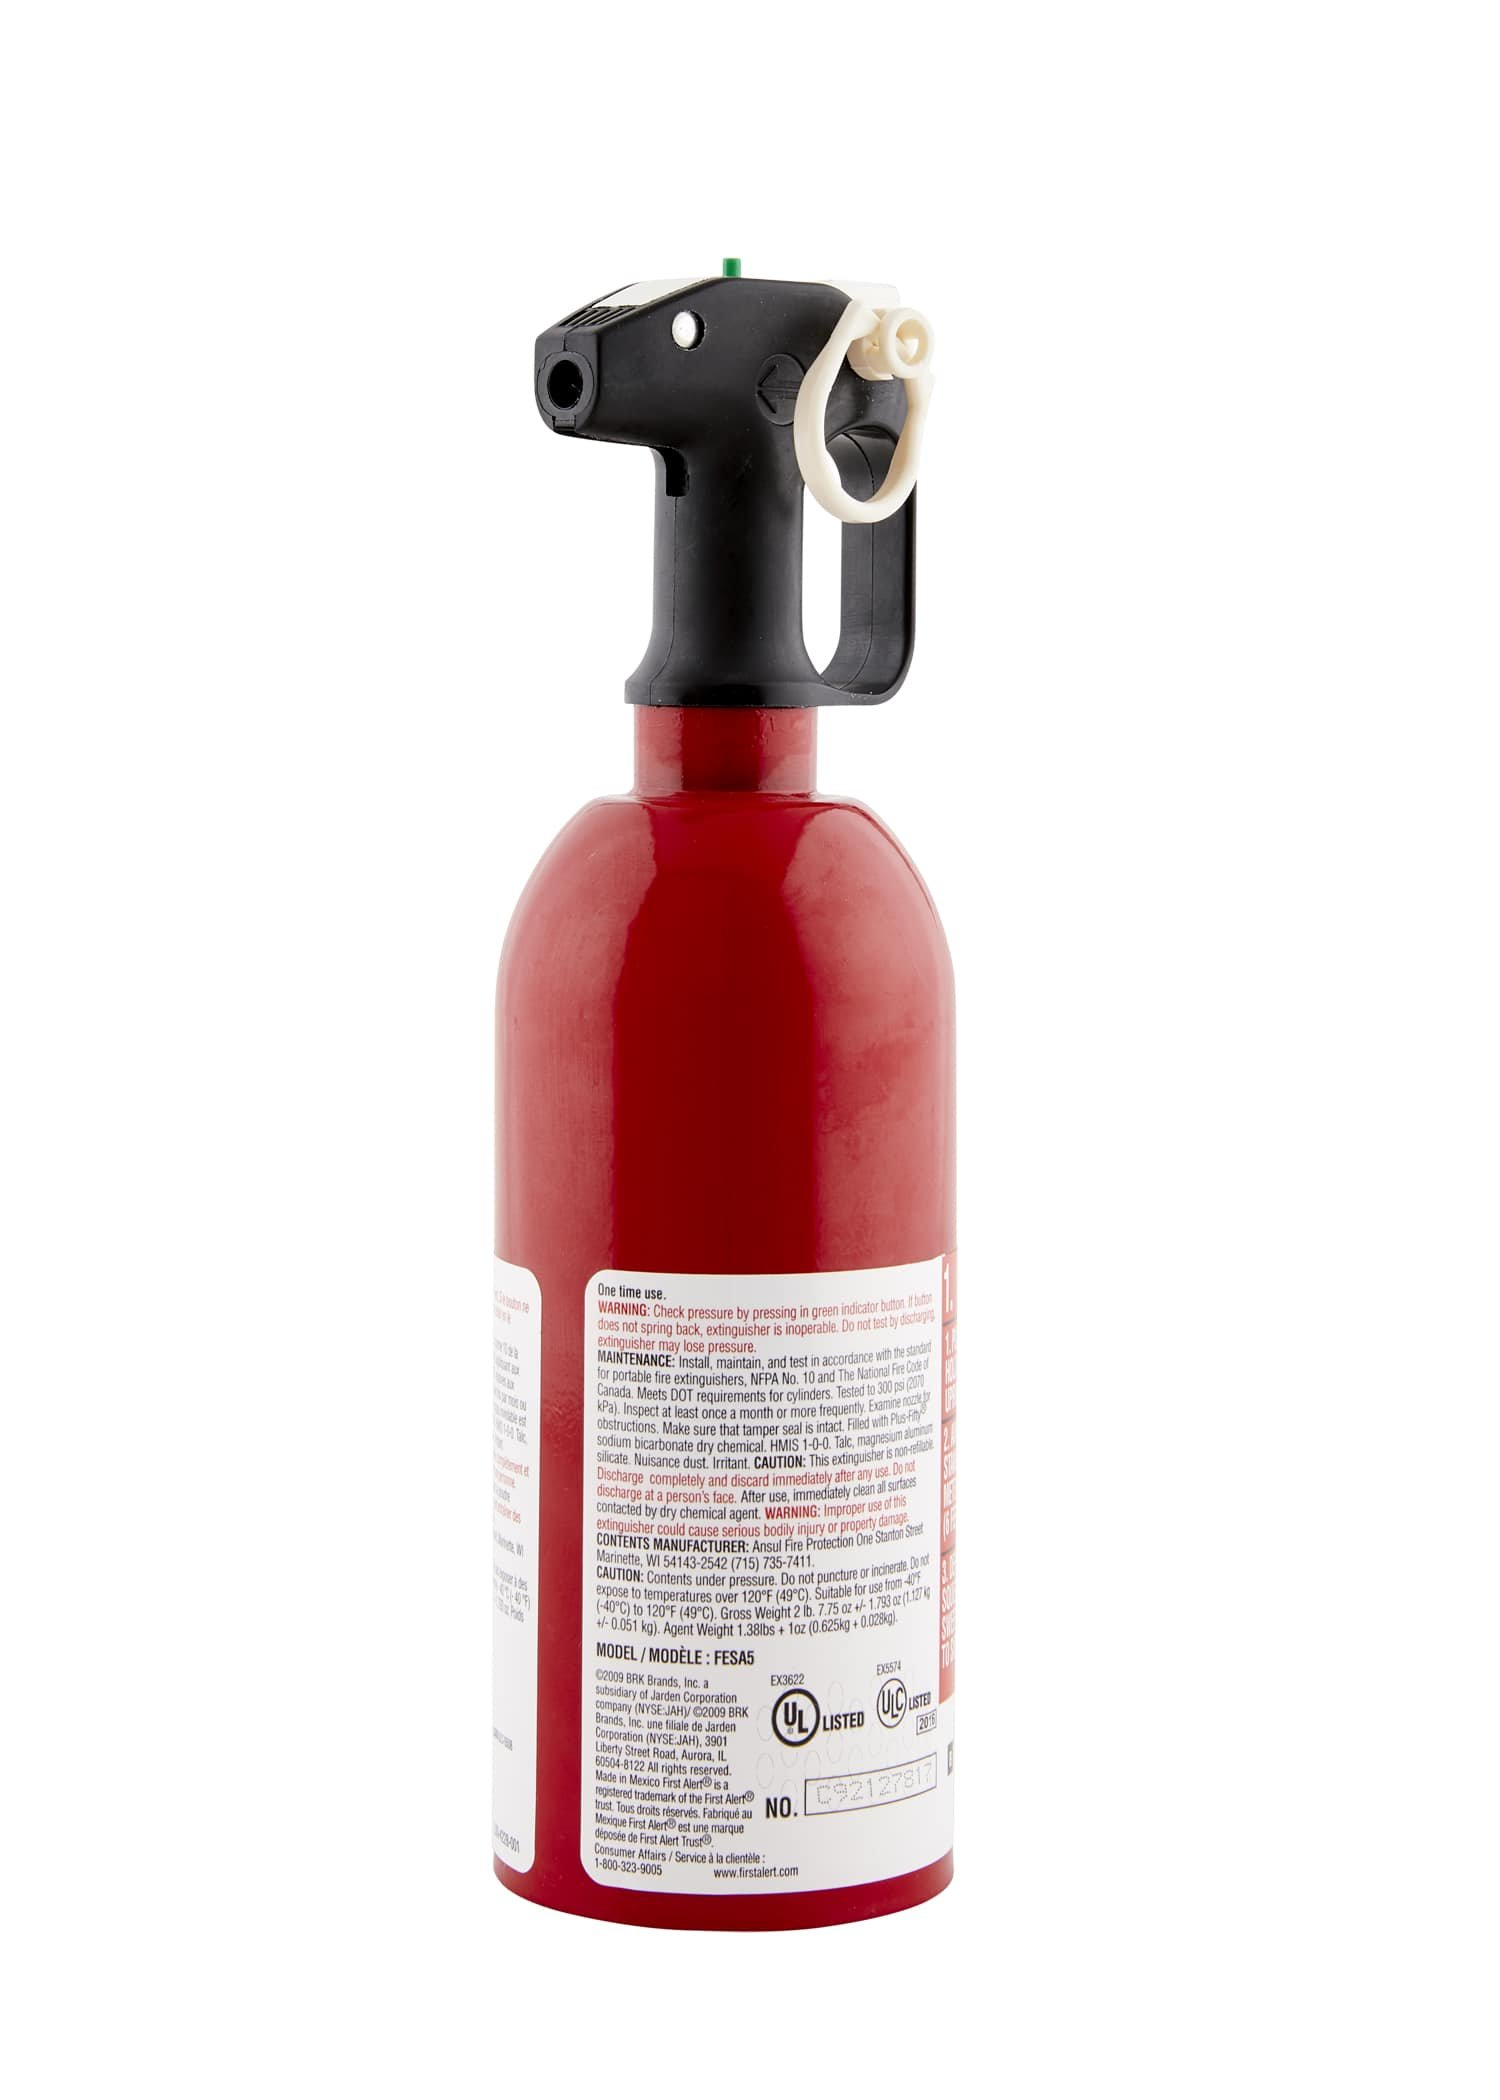 First Alert AUTO5 Auto Fire Extinguisher, Red by First Alert (Image #5)